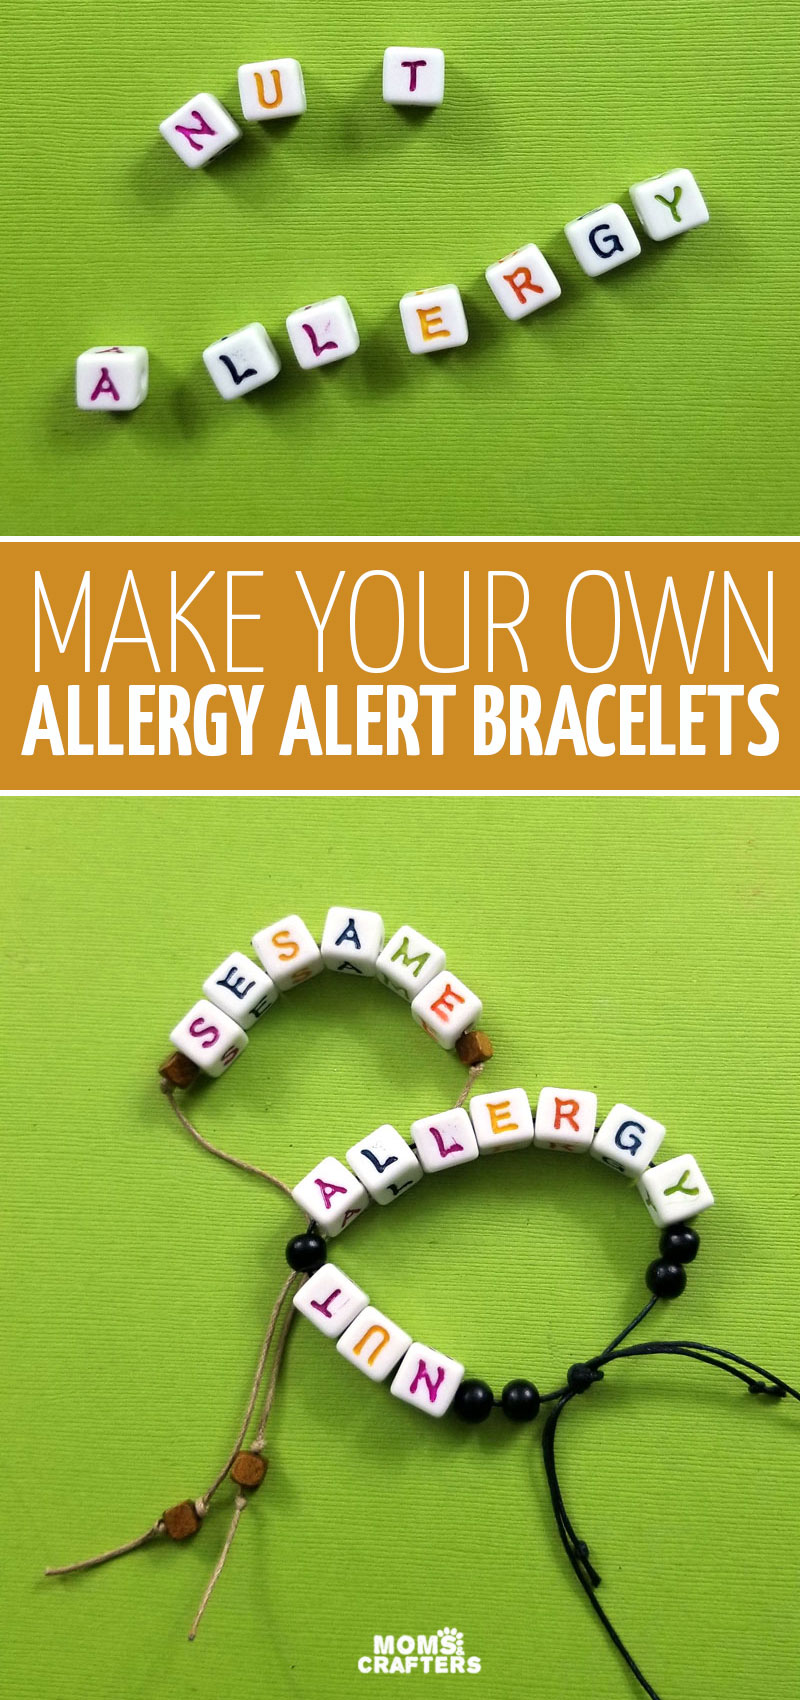 Make your own food allergy bracelets! This fun jewelry making project for kids is a sweet way to create allergy alerts - especially when you need them for a specific instance, such as travel, and not long term.